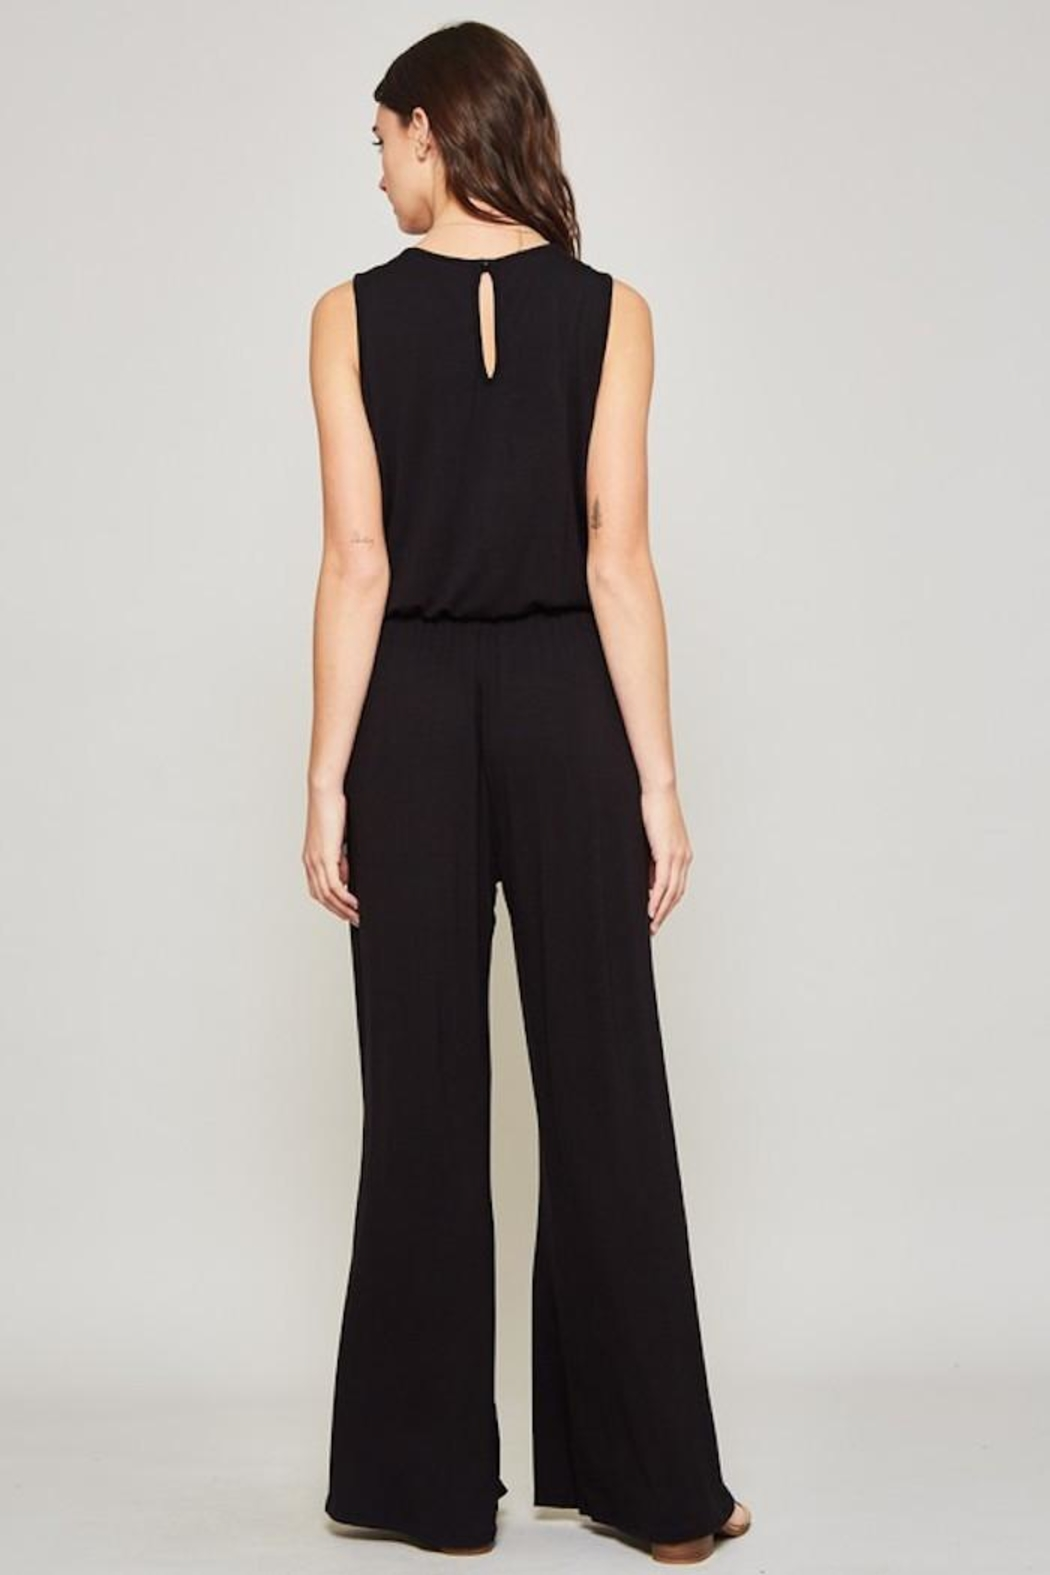 Beeson River Laid Back Jumpsuit - Side Cropped Image